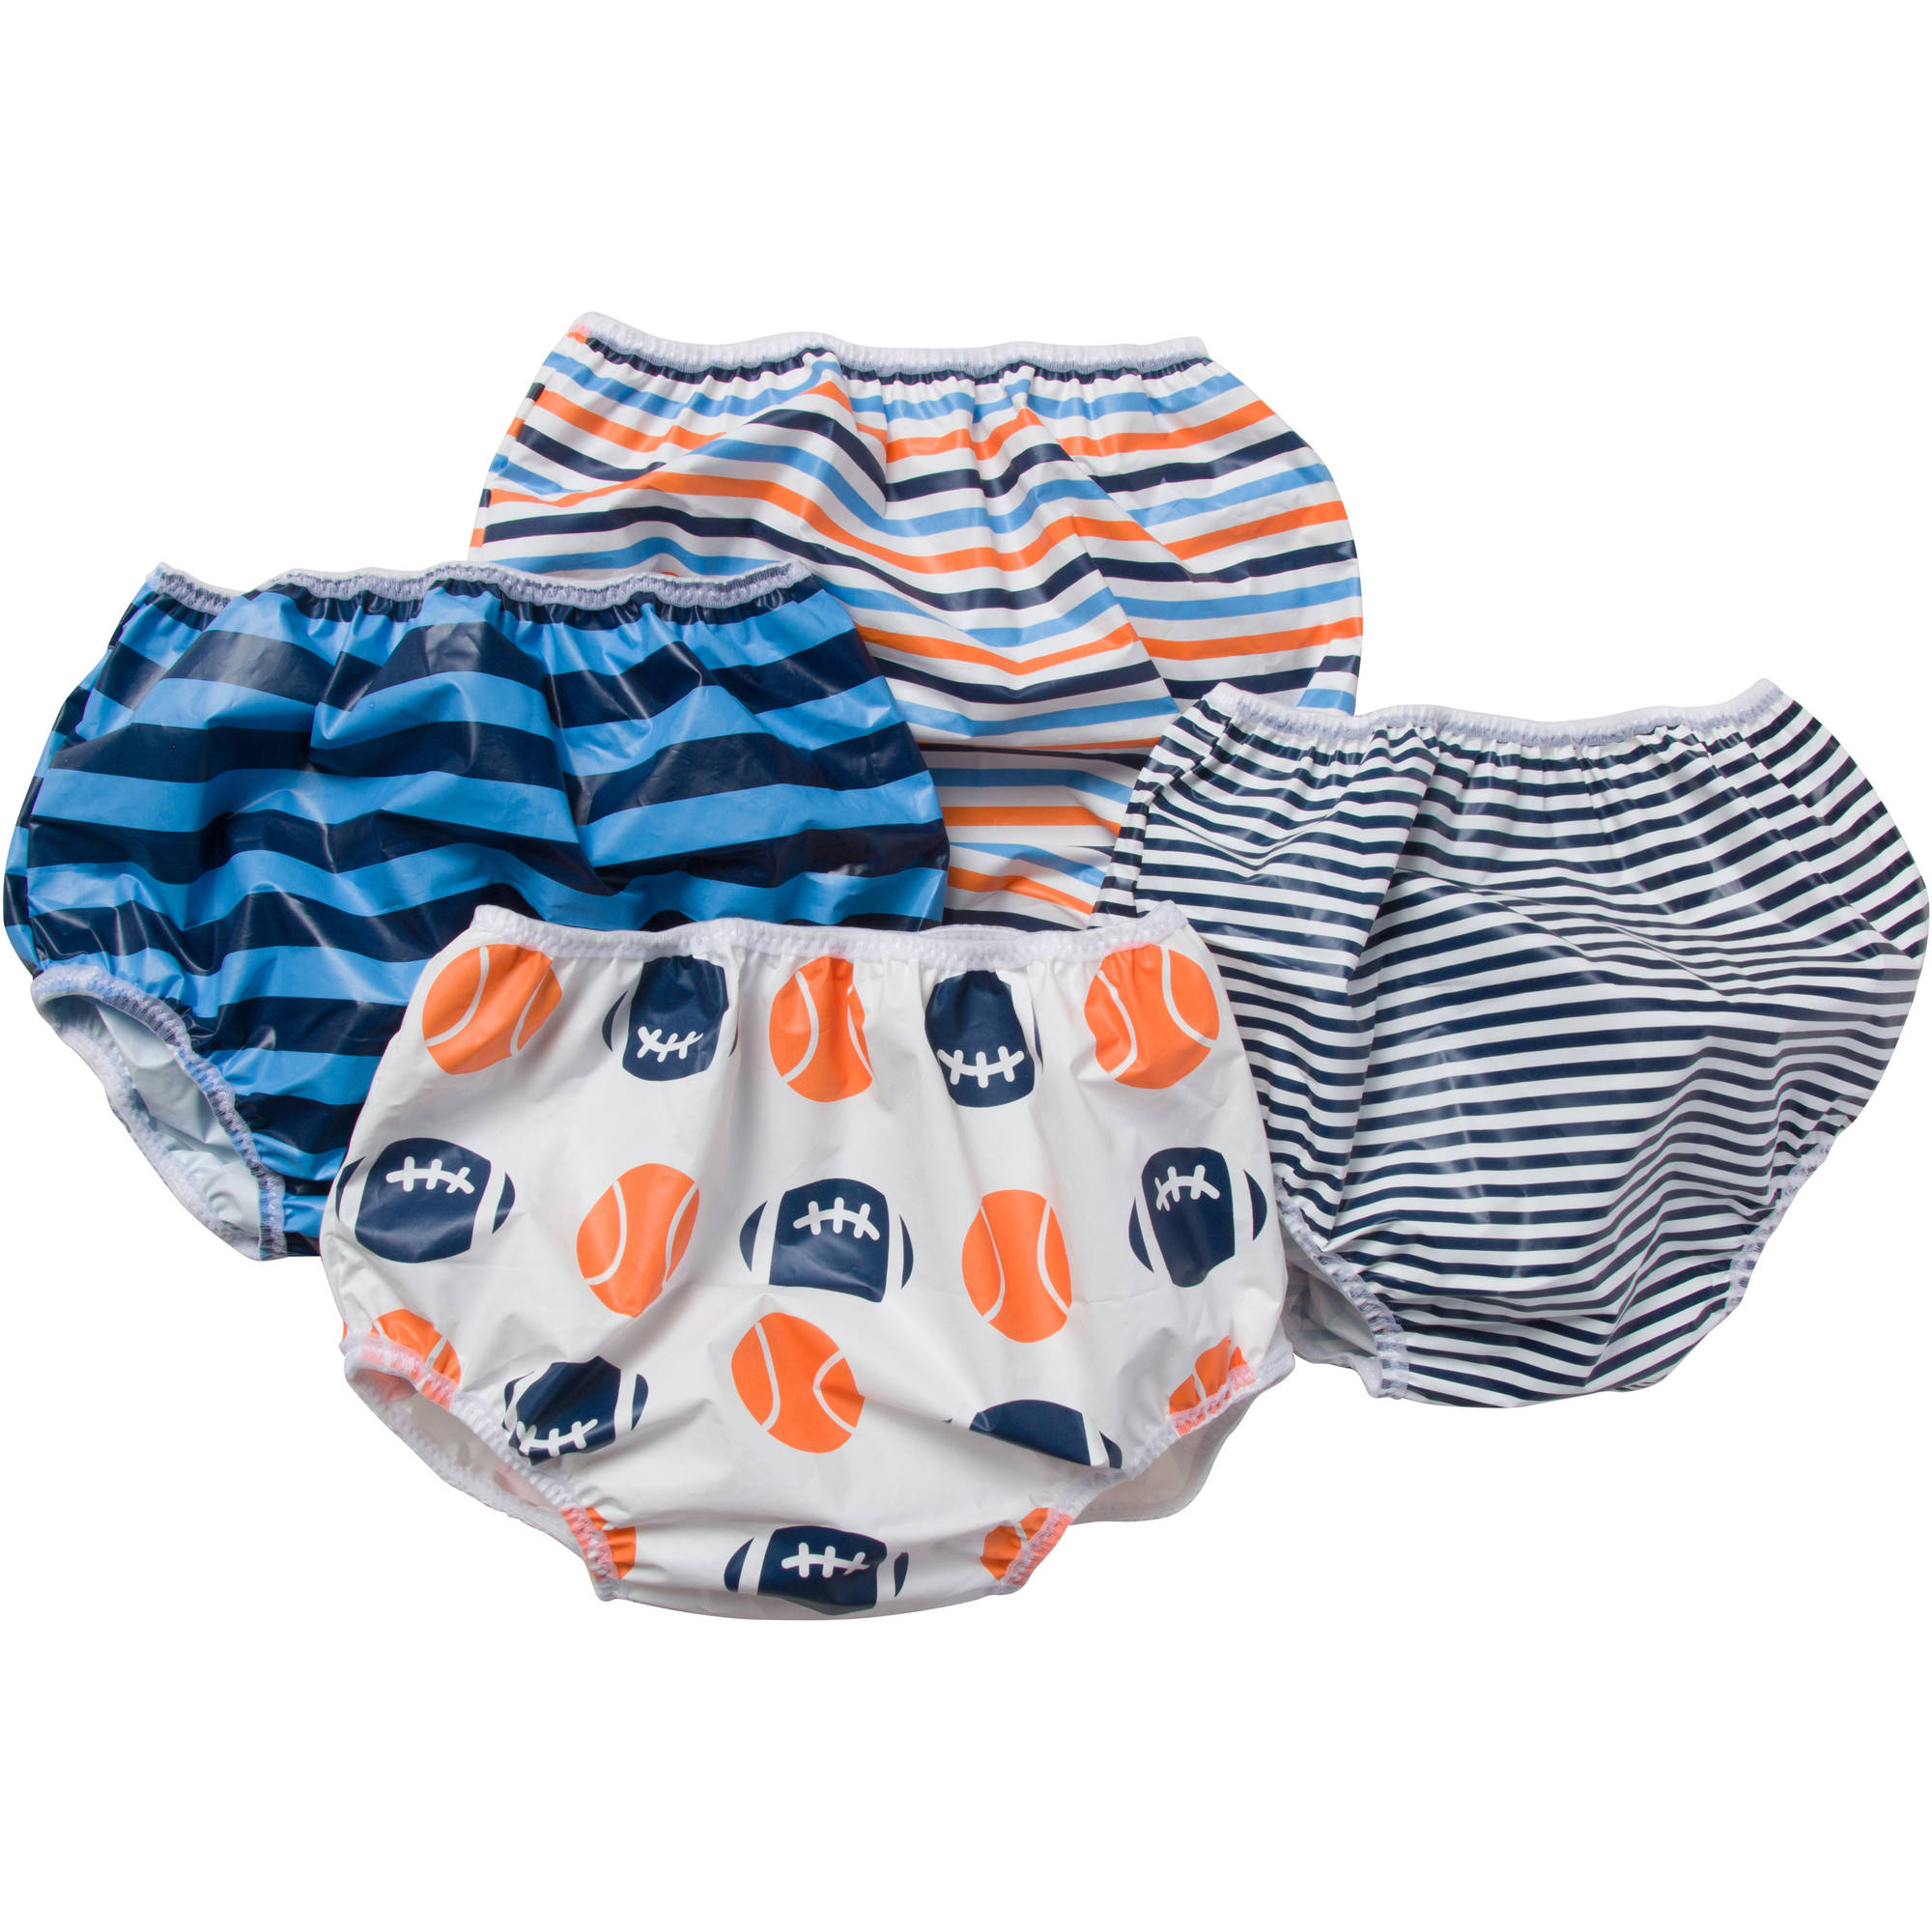 Gerber Baby Toddler Boy Blue Waterproof Pants - 4 Pack